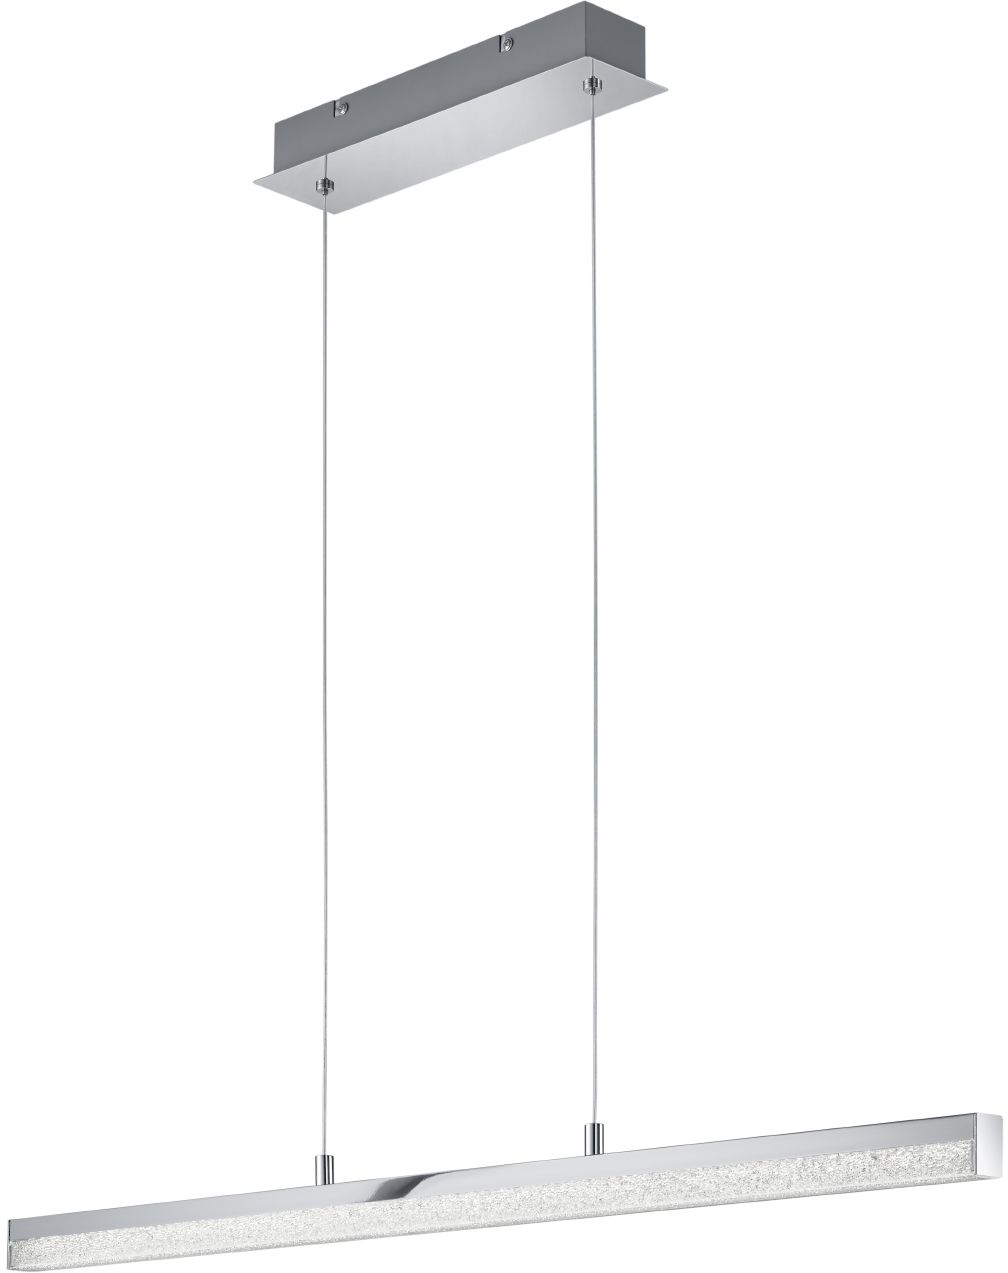 LED-riippuvalaisin Trio Alley 850x1500x80 mm kromi